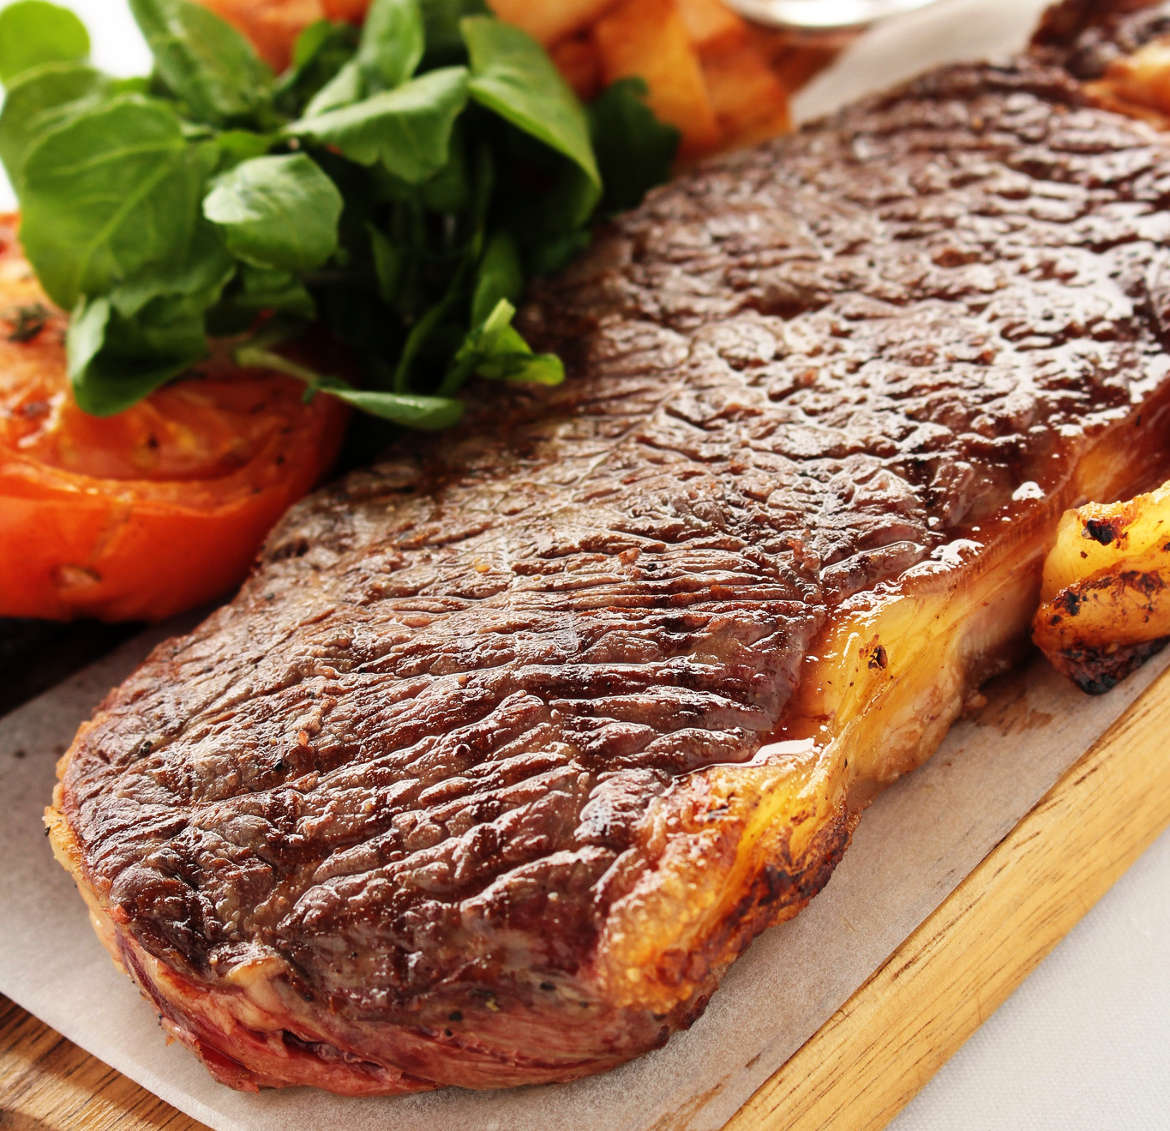 Naturally pasture-raised sirloin beef steaks - dry aged, grass fed, grass finished, non-gmo, antibiotic-free, hormone-free, free-range pasture raised